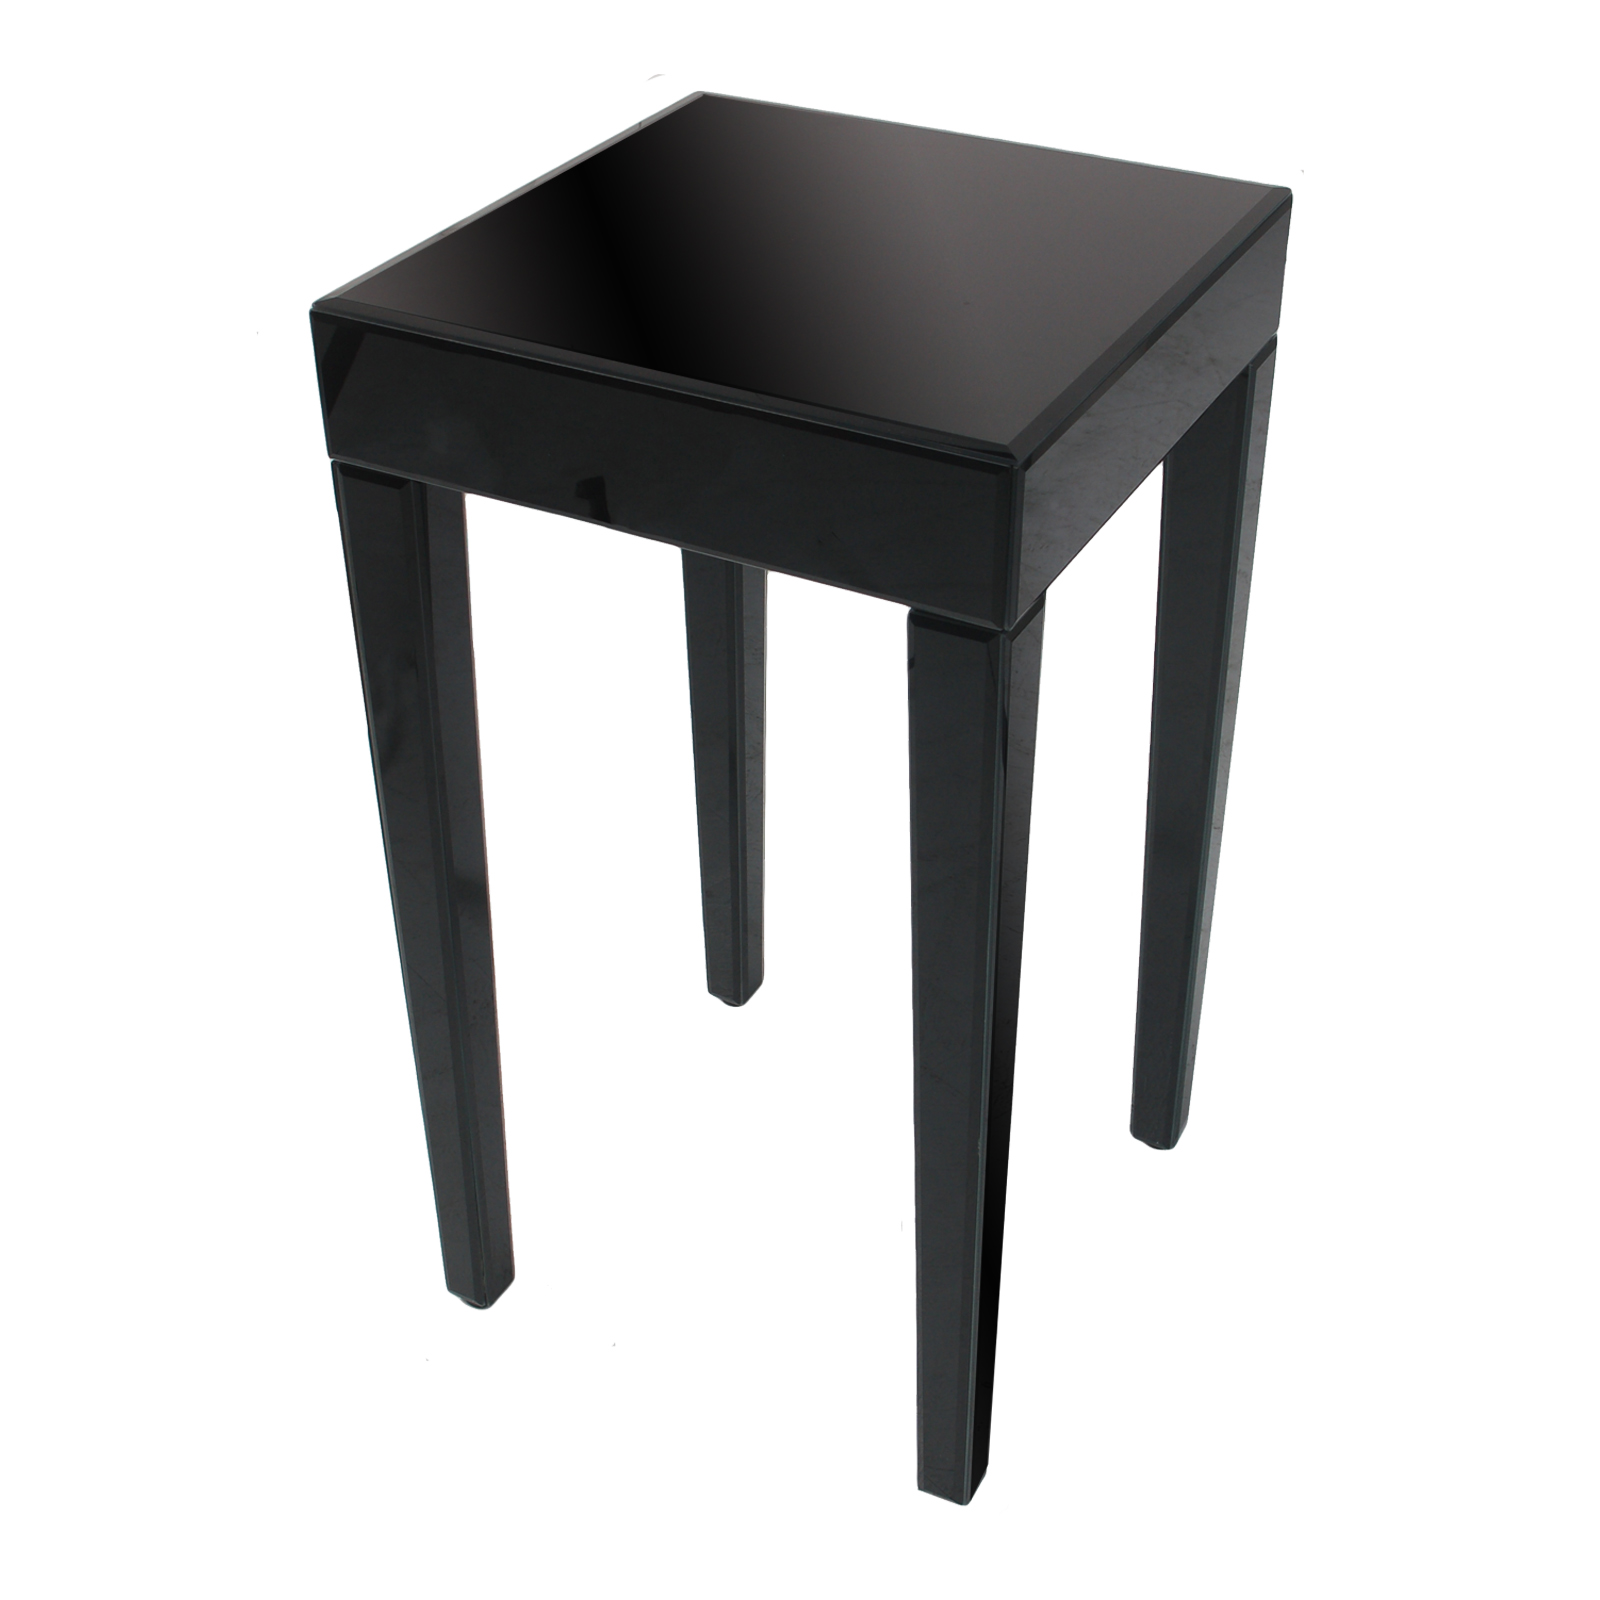 outdoor side table clearance probably terrific beautiful tall black end ideas furniture creative with drawer for dining room decoration plus small tables ikea magnificent home